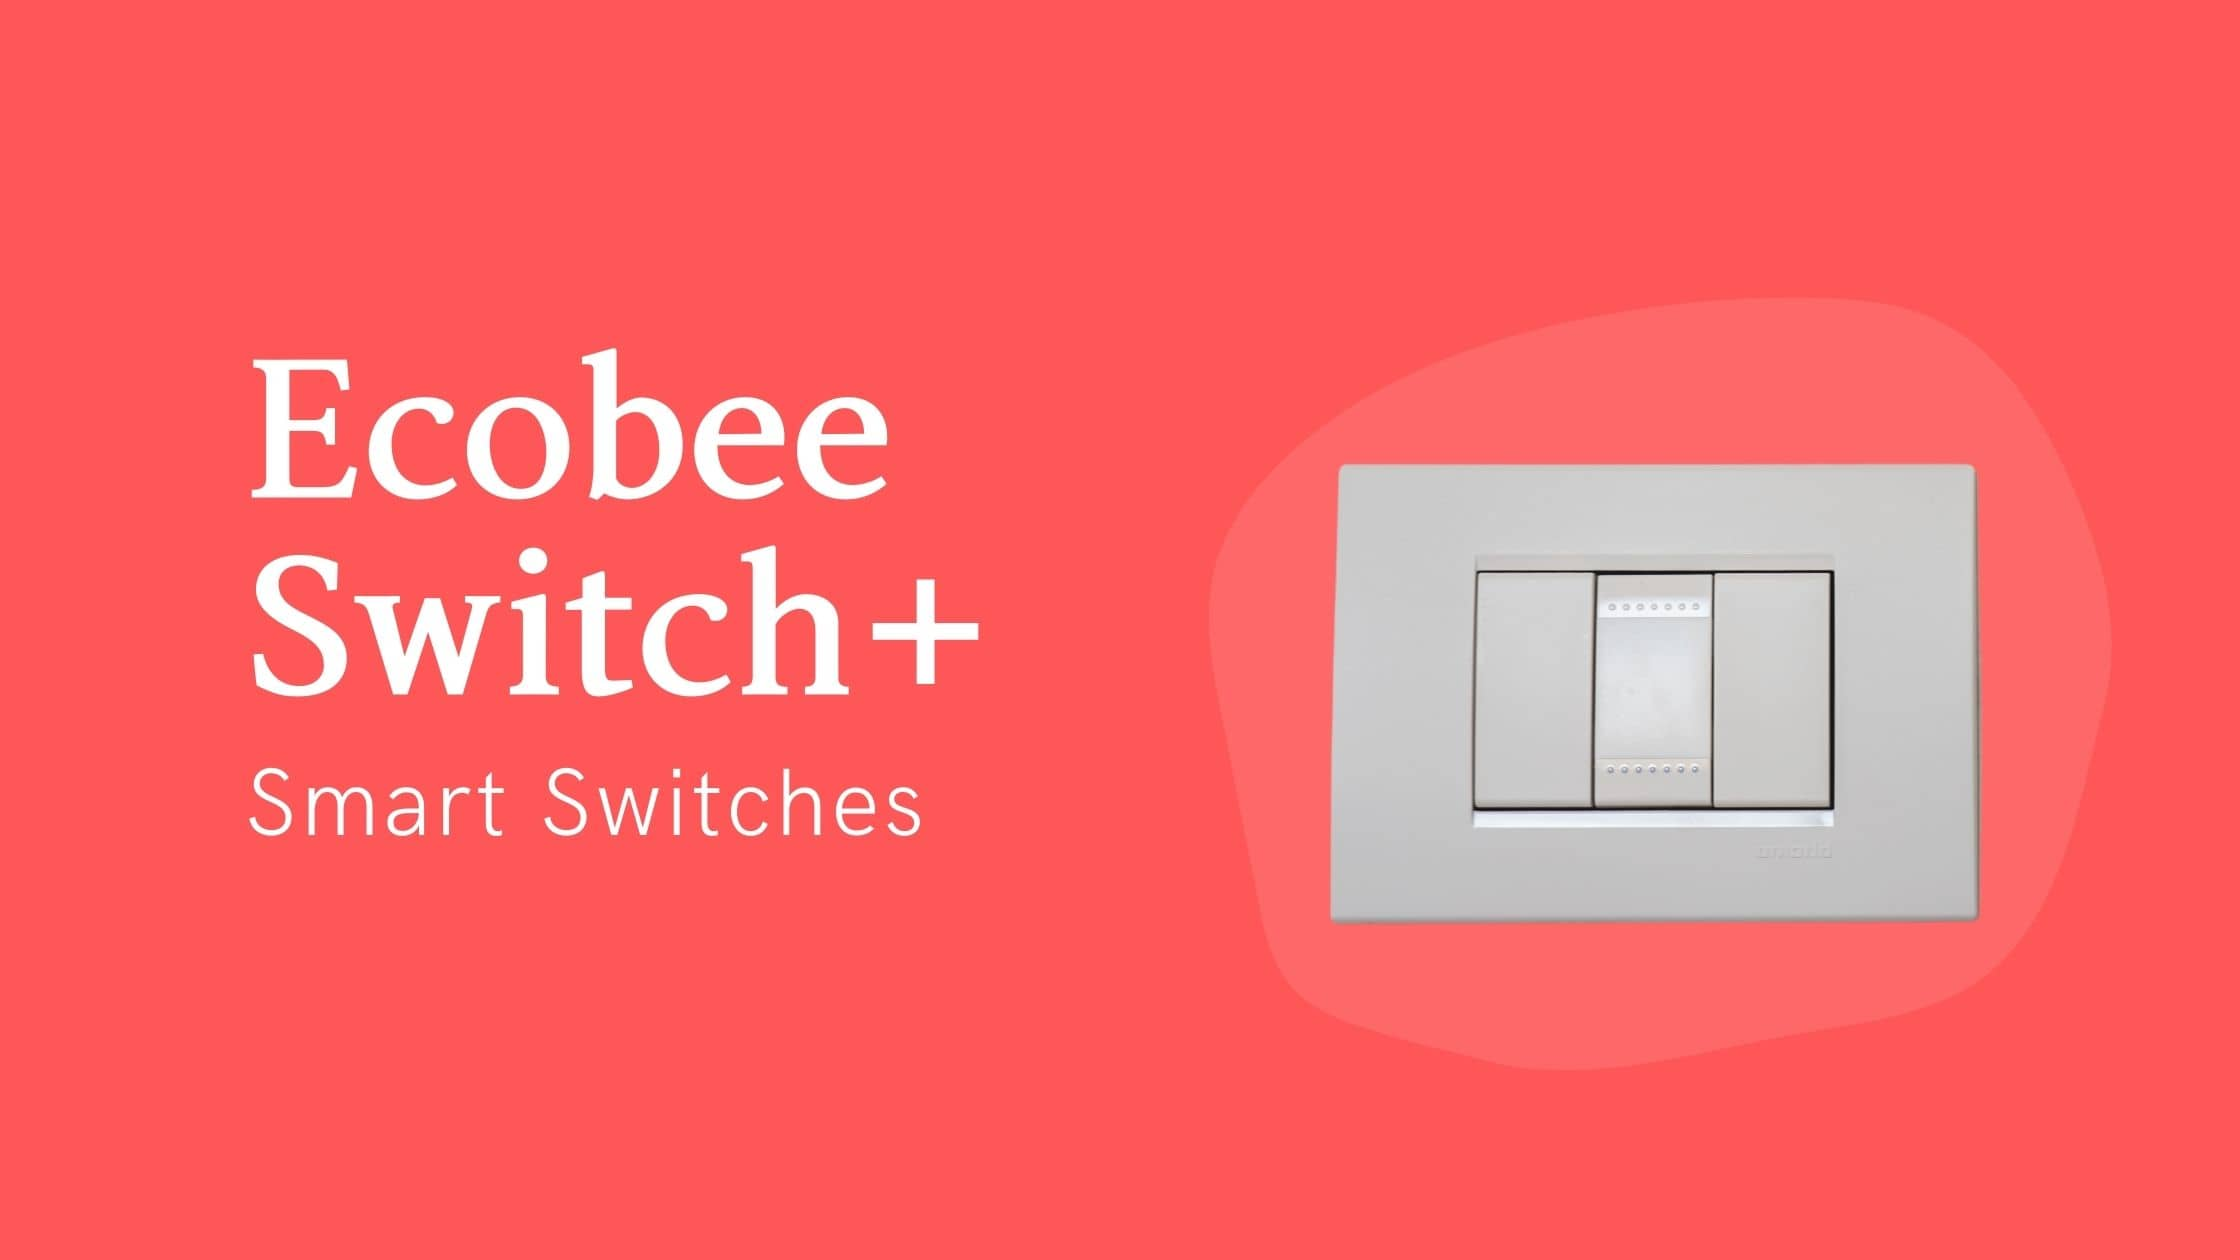 Ecobee Switch+ Smart Switch